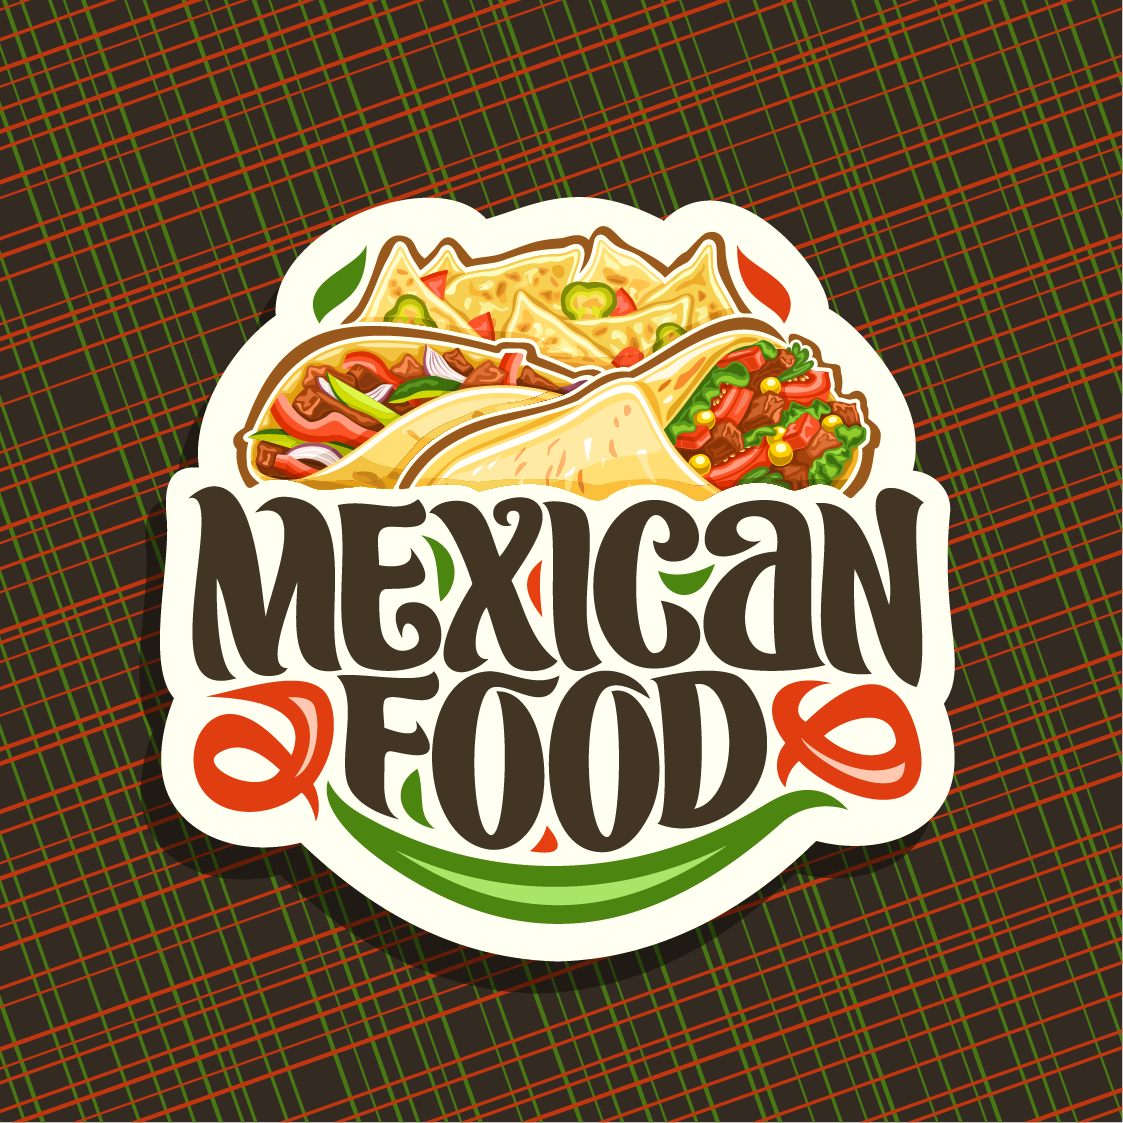 Mexican Food logo.png